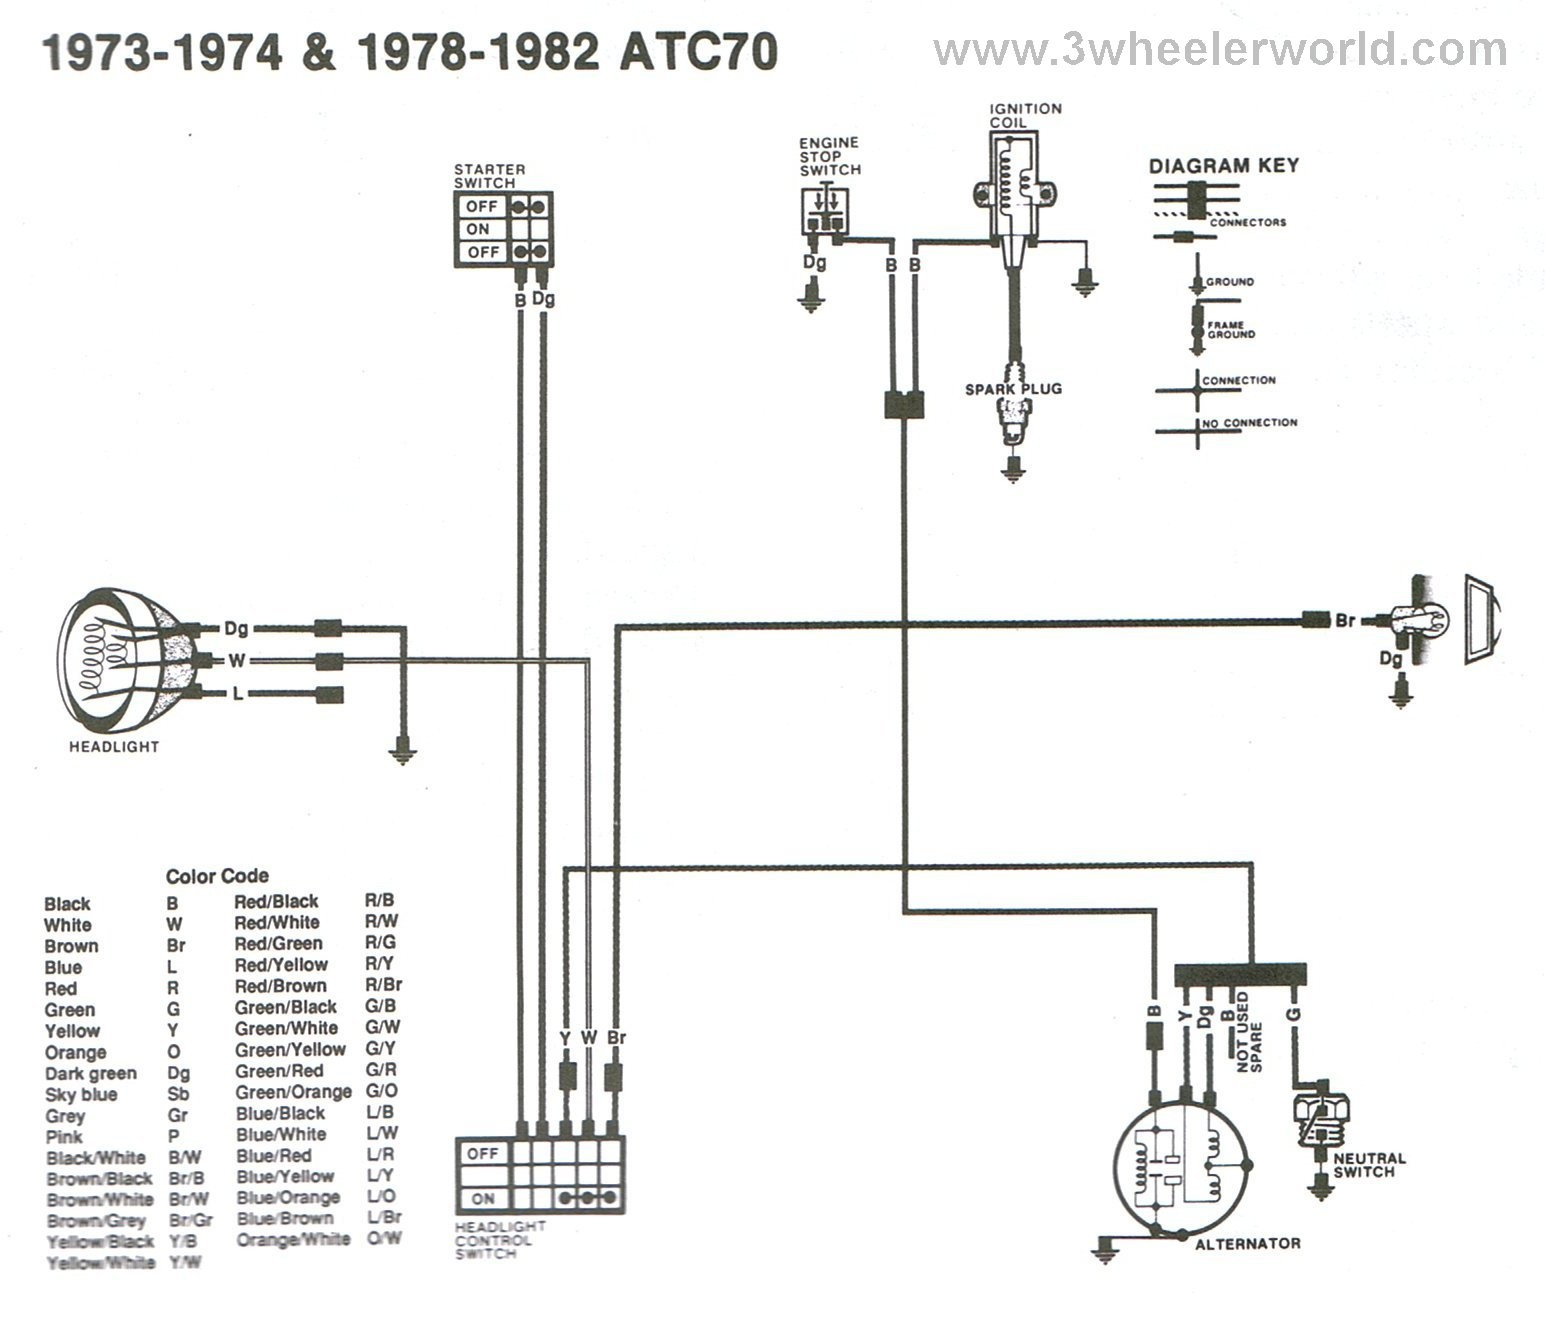 Honda 70 Engine Diagram Wiring Diagram Xl Wiring Info • Of Honda 70 Engine Diagram